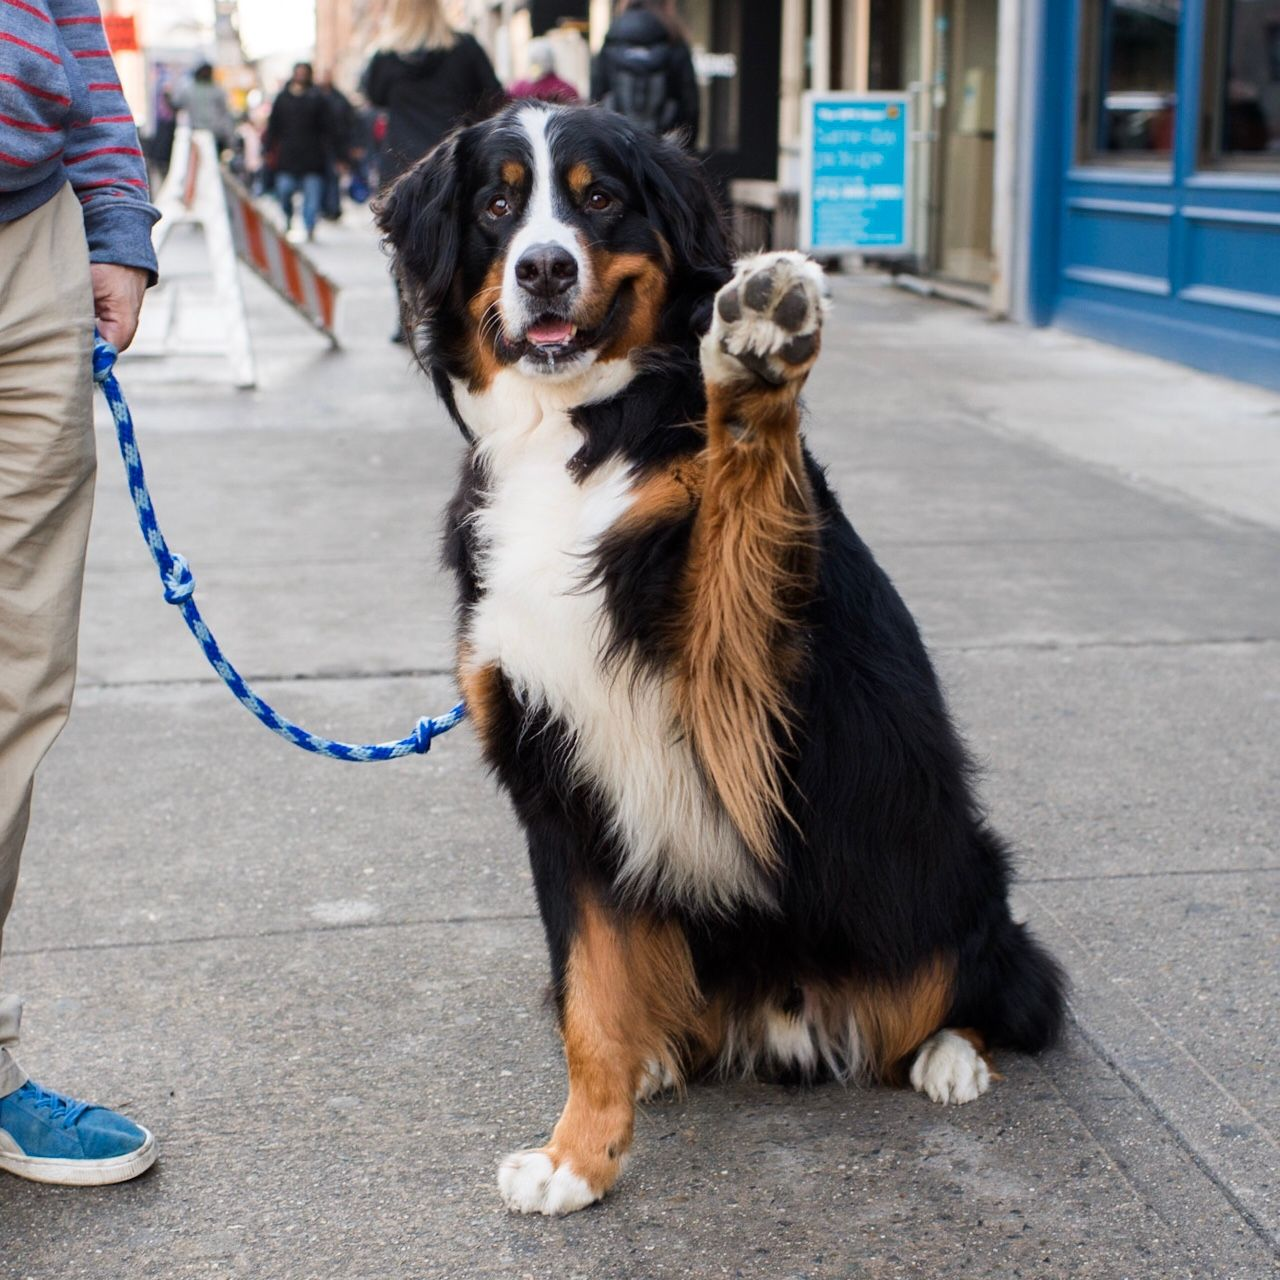 Pluto Bernese Mountain Dog 6 Y X2f O 18th Amp 7th Ave New York Ny He Loves To Carry Things Like Boxes Of C Bernese Mountain Dog Dogs Working Dogs